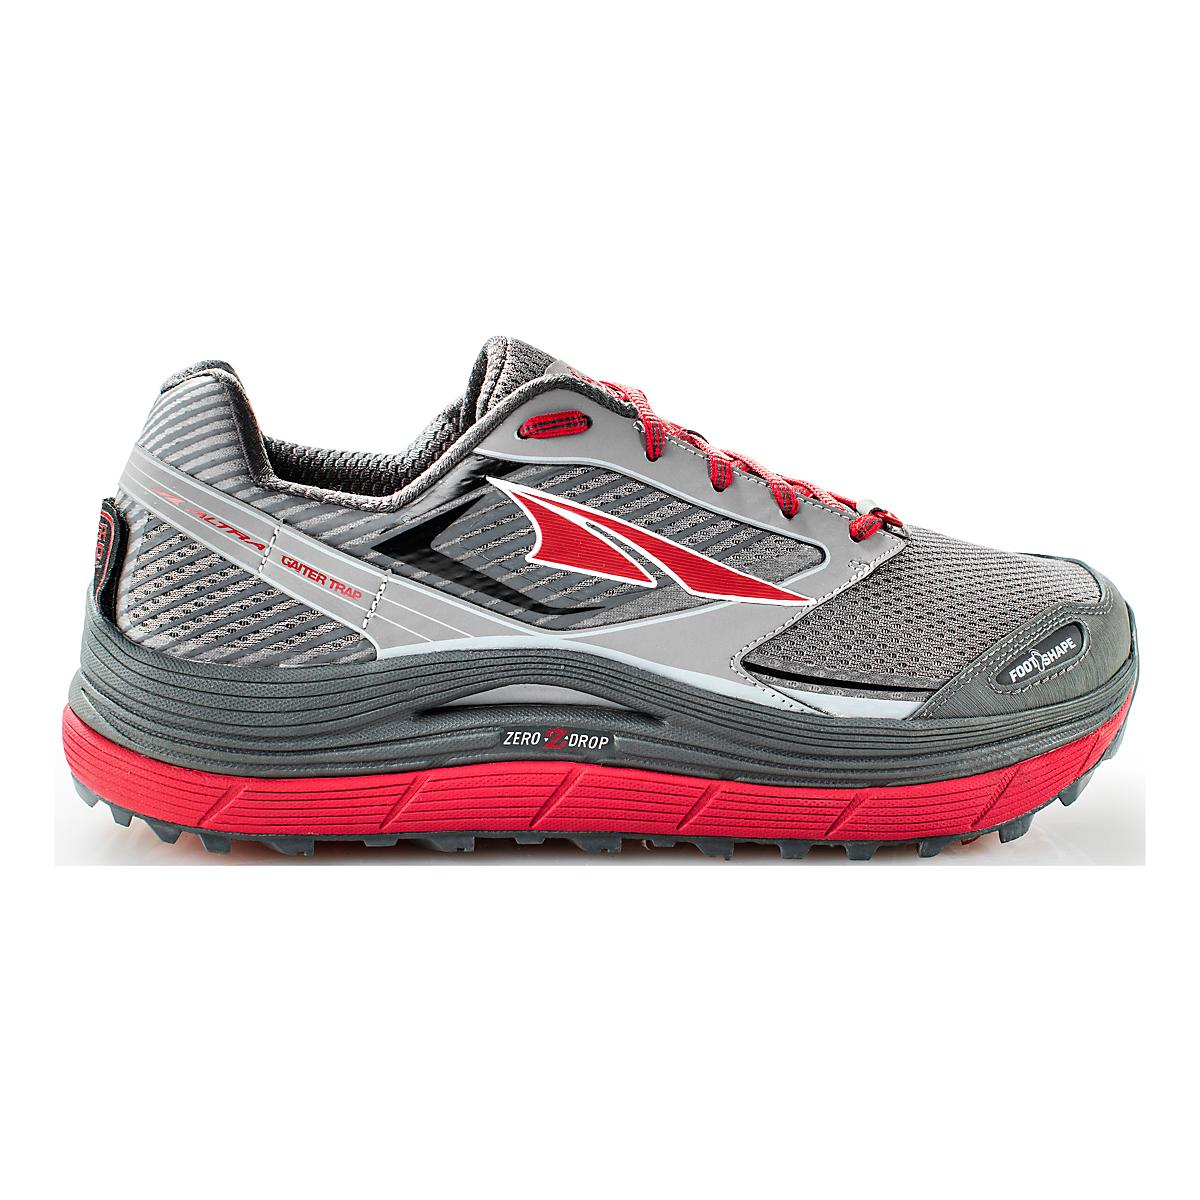 25455e6d08906 Mens Altra Olympus 2.5 Trail Running Shoe at Road Runner Sports